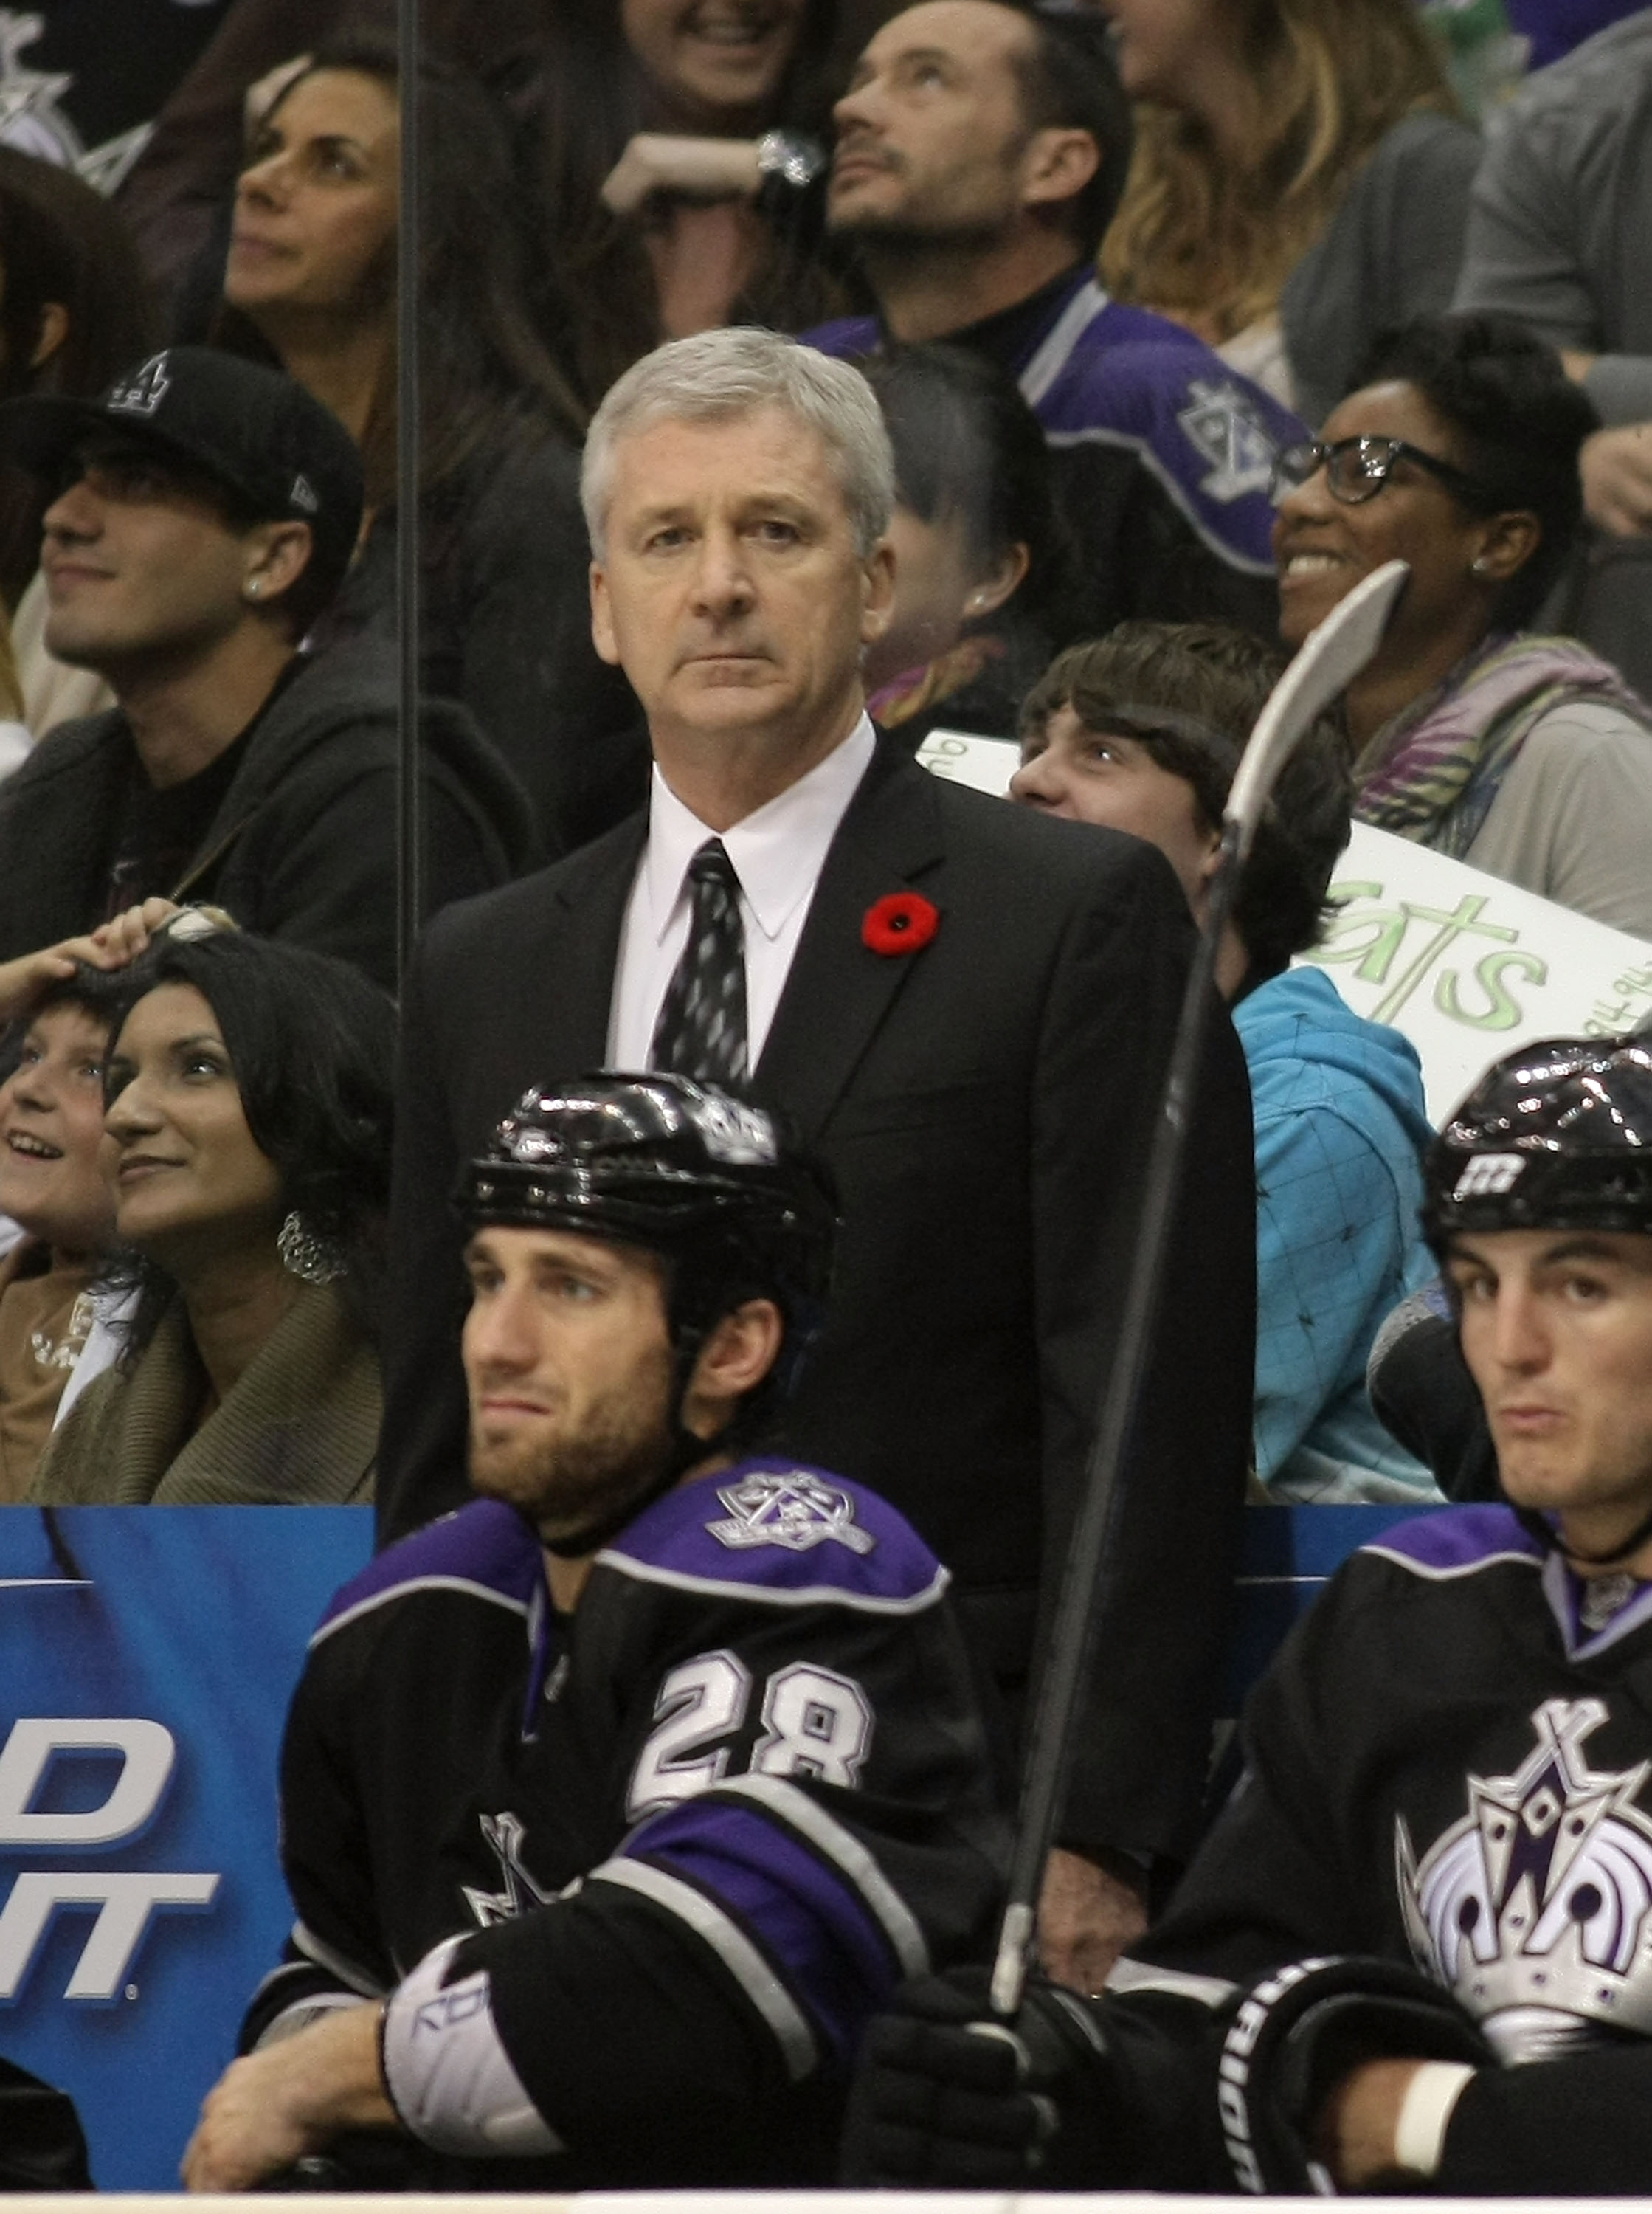 LOS ANGELES, CA - NOVEMBER 06:  Head Coach Terry Murray of the Los Angeles Kings looks on from the bench area during their NHL game against the Nashville Predators at Staples Center on November 6, 2010 in Los Angeles, California. The Kings defeated the Pr